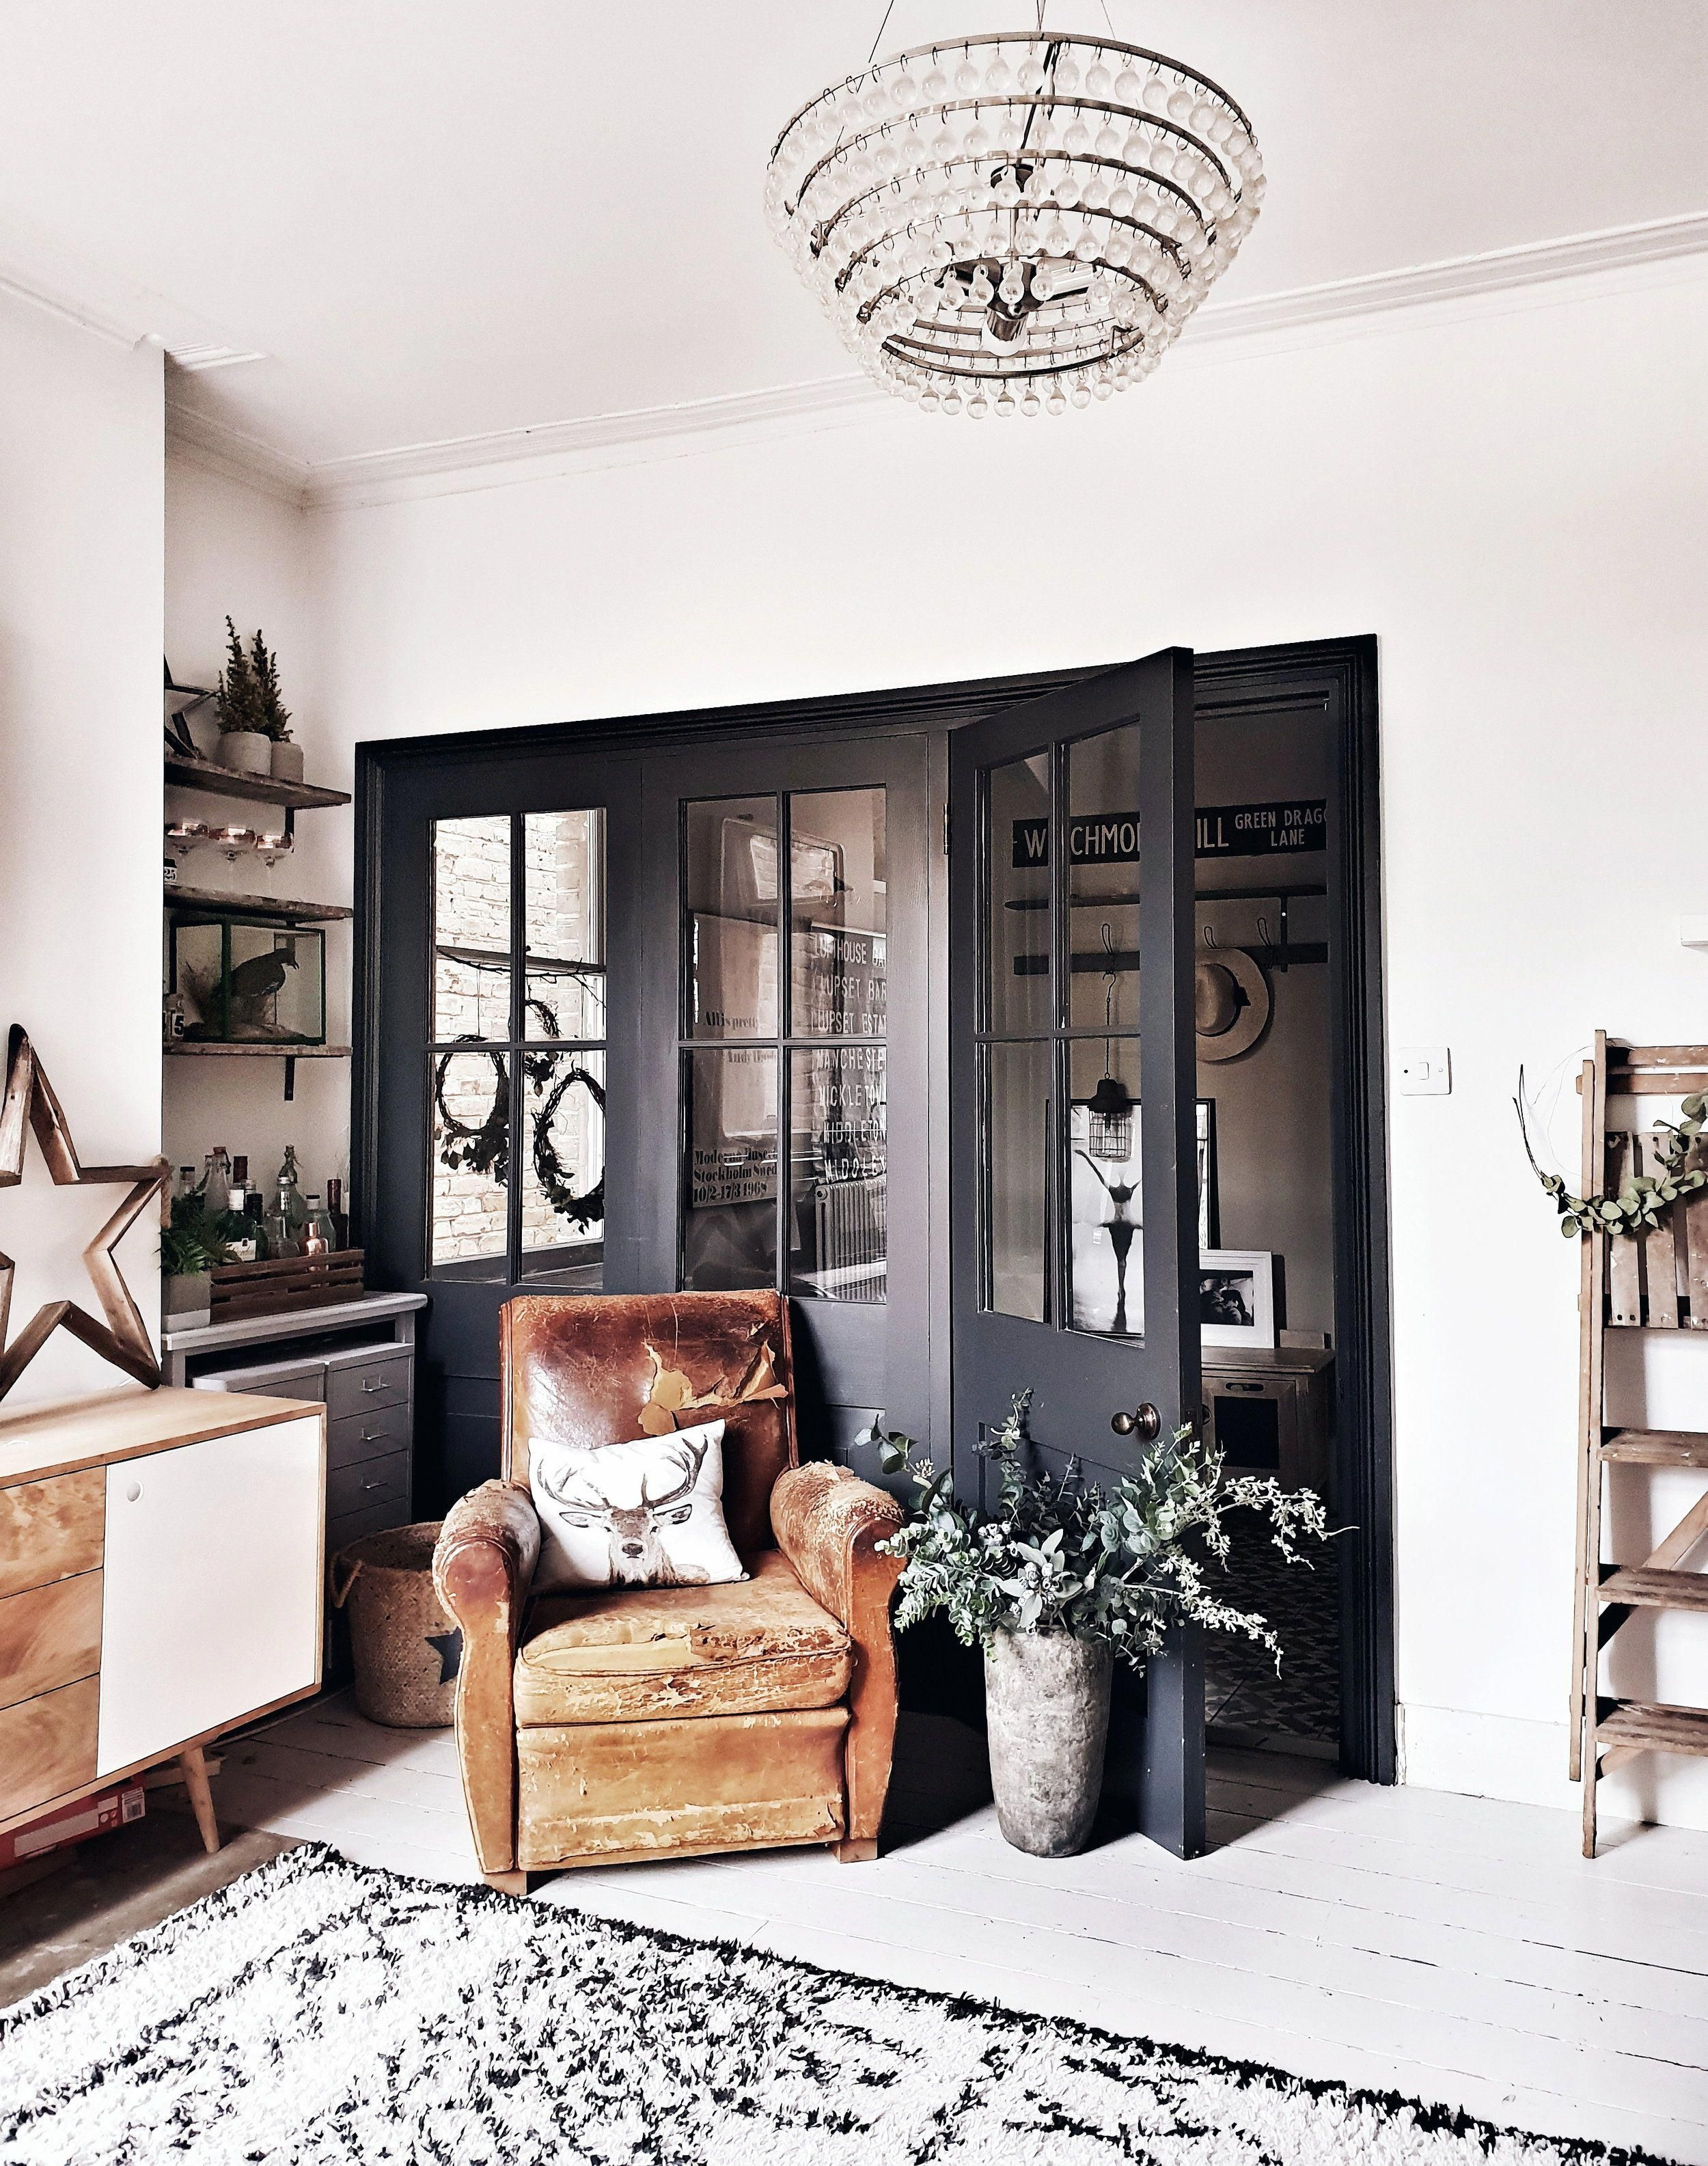 Cheap Home Decorations For Sale Referral: 9232025748 ...